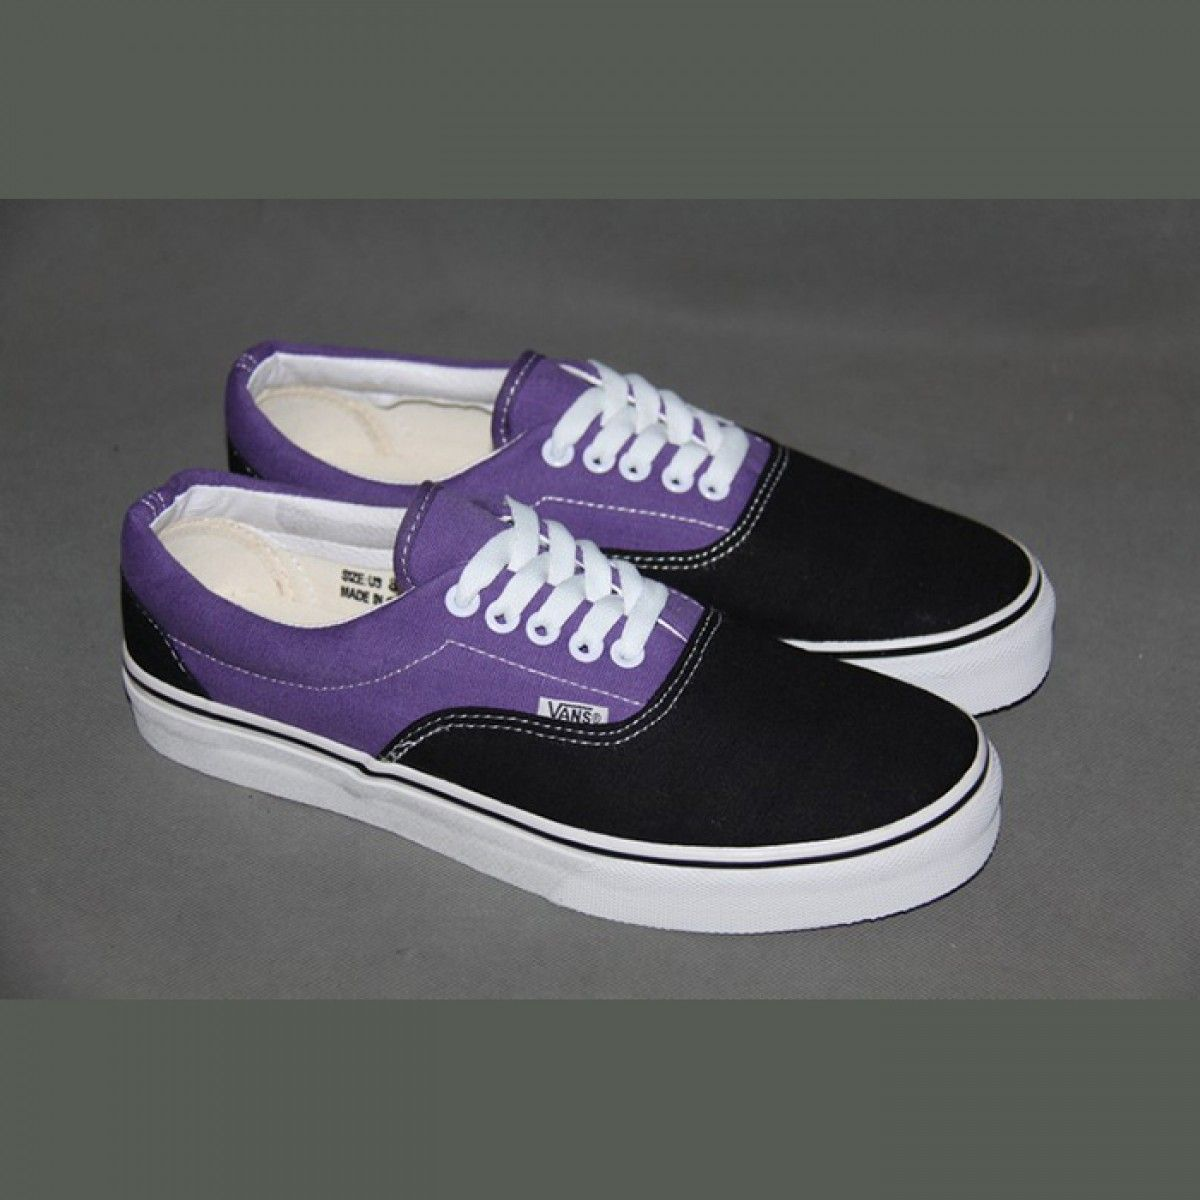 b7a6d9eb4c04 Vans Shoes Black Purple Two-Tone Era Shoes Unisex Classic Canvas ...